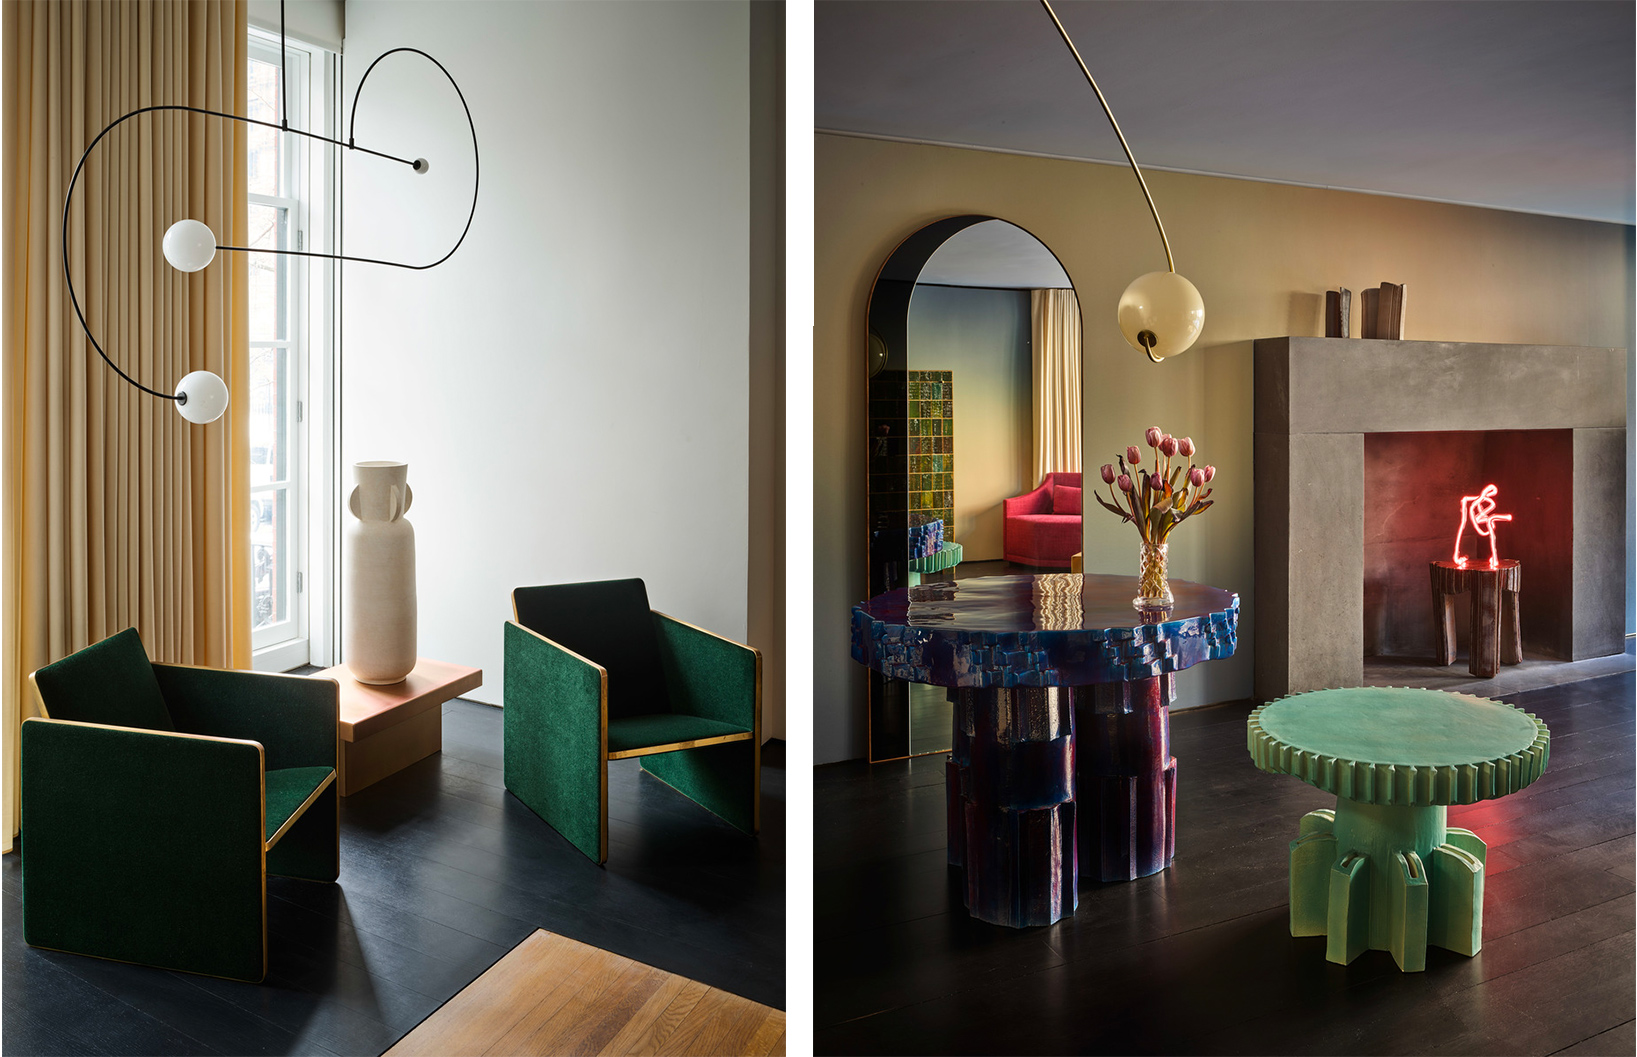 Casa Perfect New York: The Gallery Space Merging Art, Design